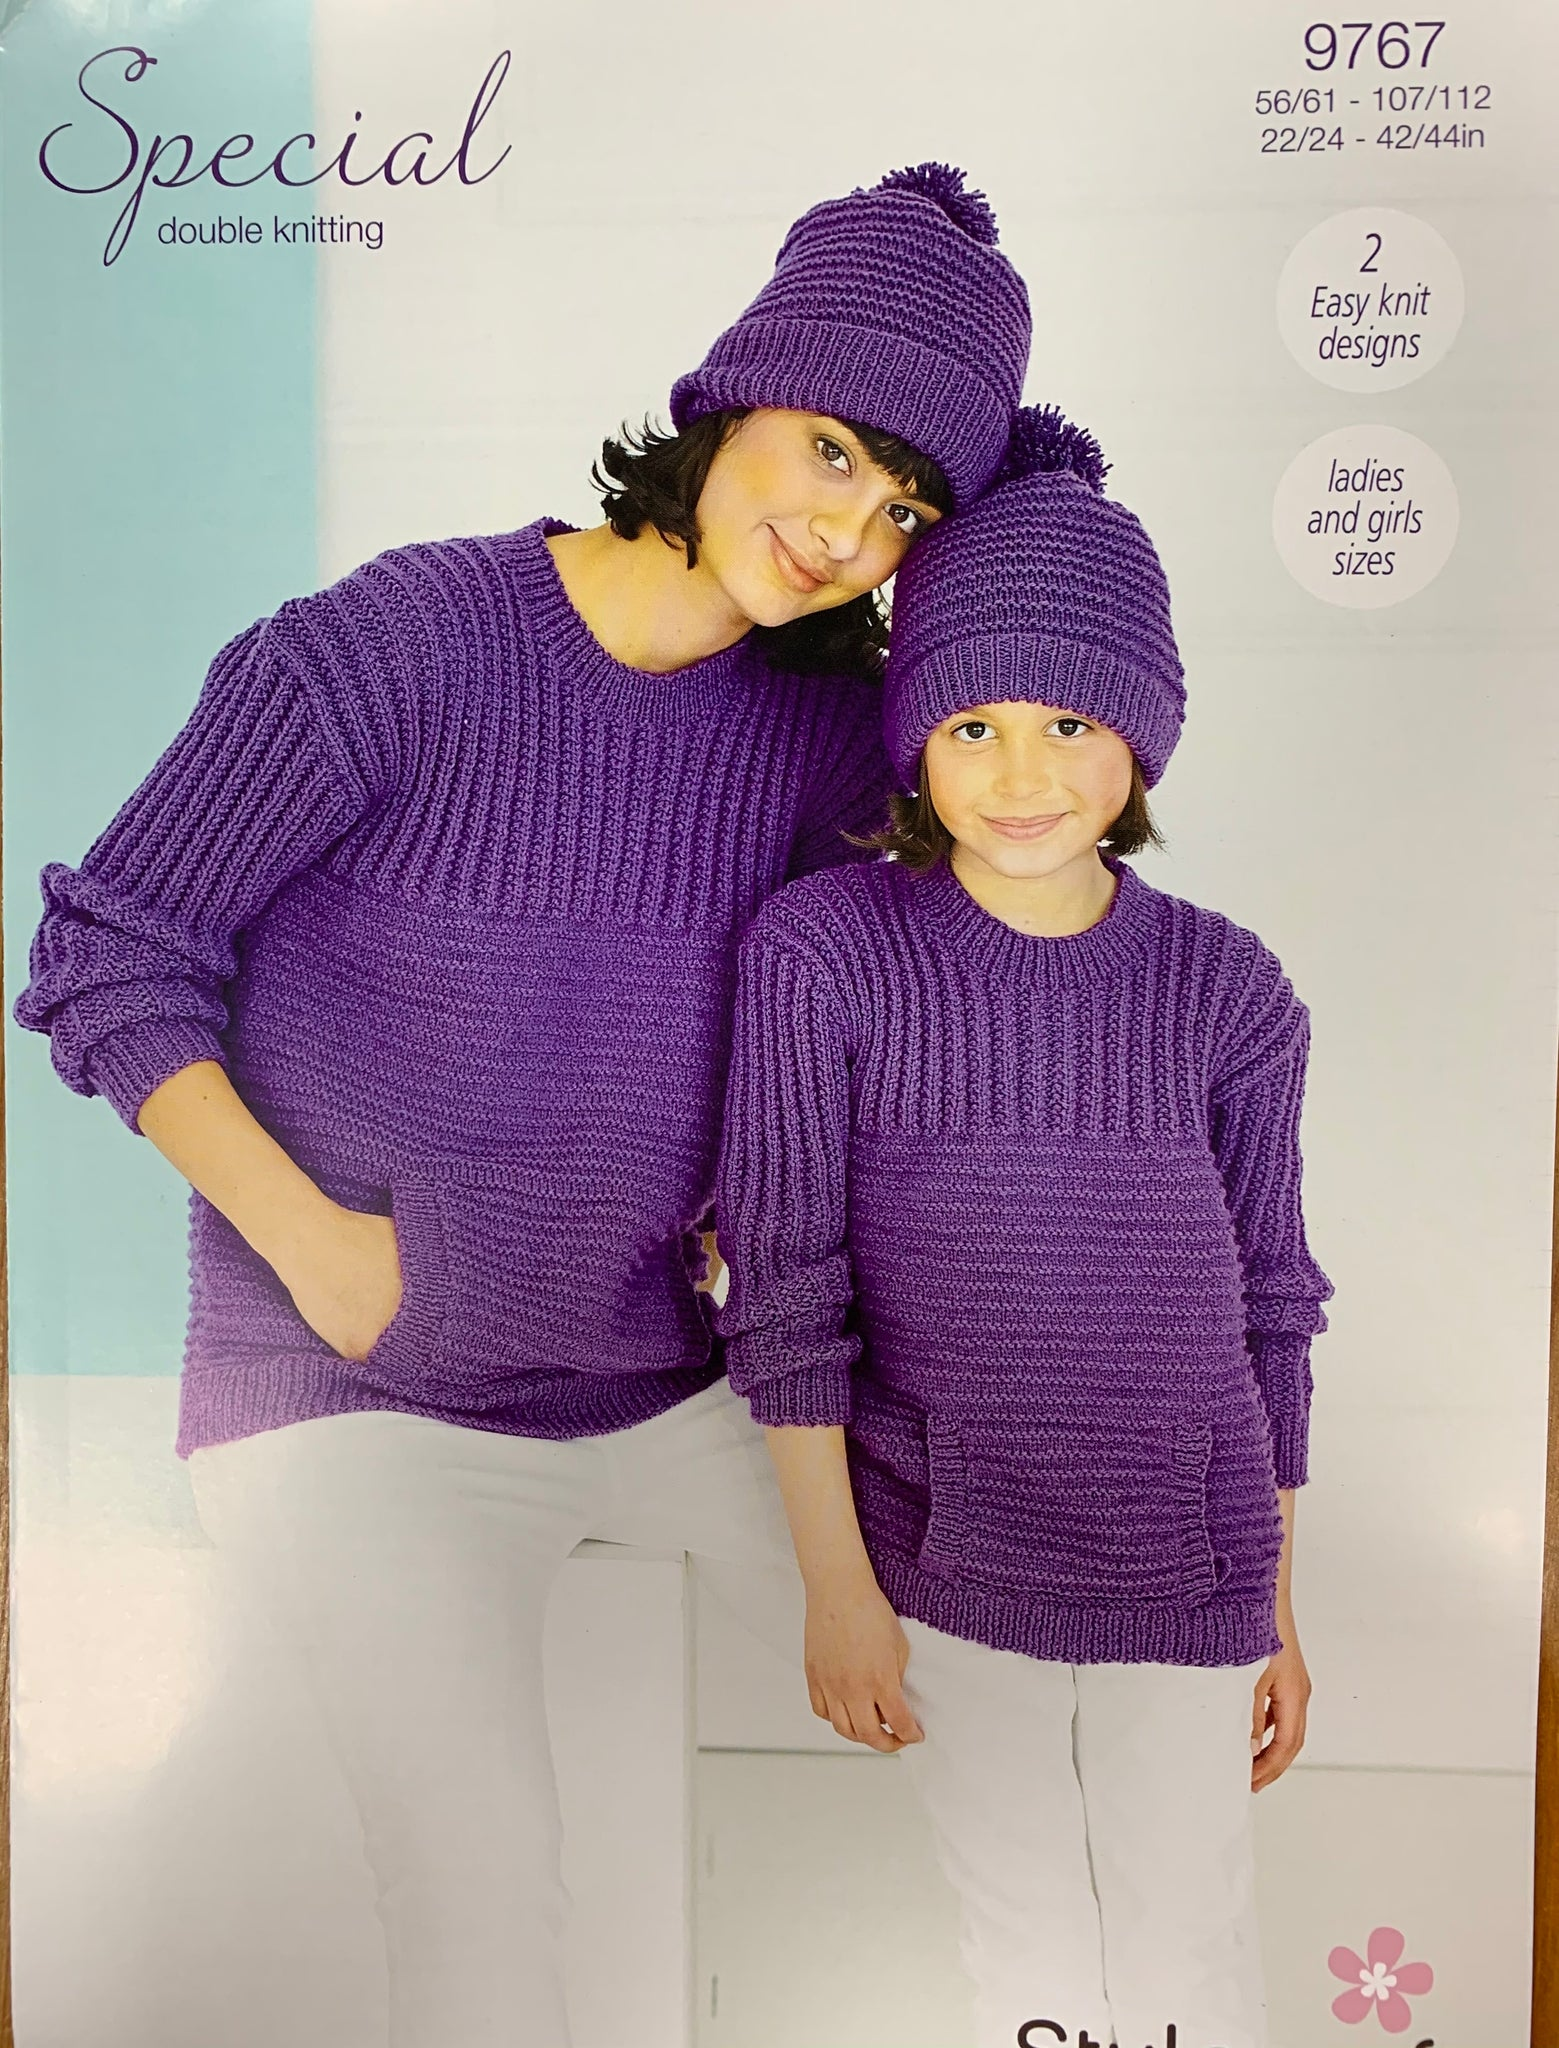 9767 Stylecraft Special dk ladies and child sweater and hat knitting pattern